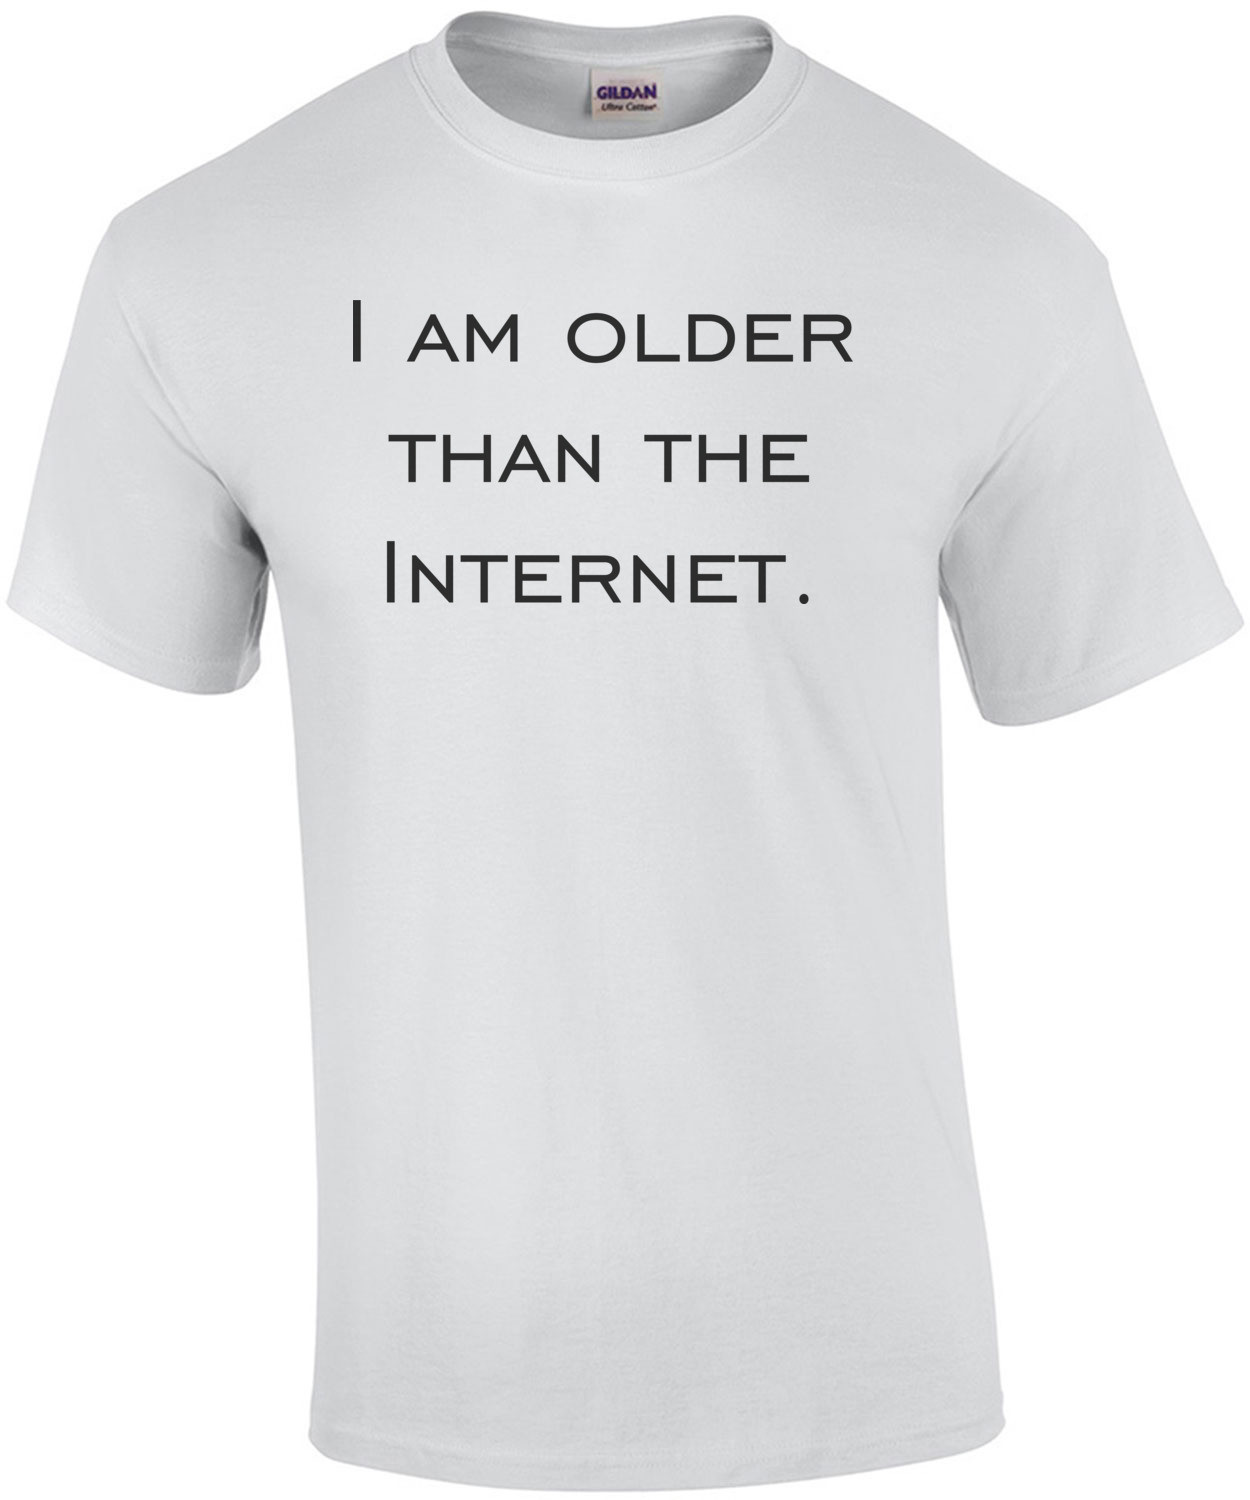 I am older than the Internet. Happy Birthday T-Shirt